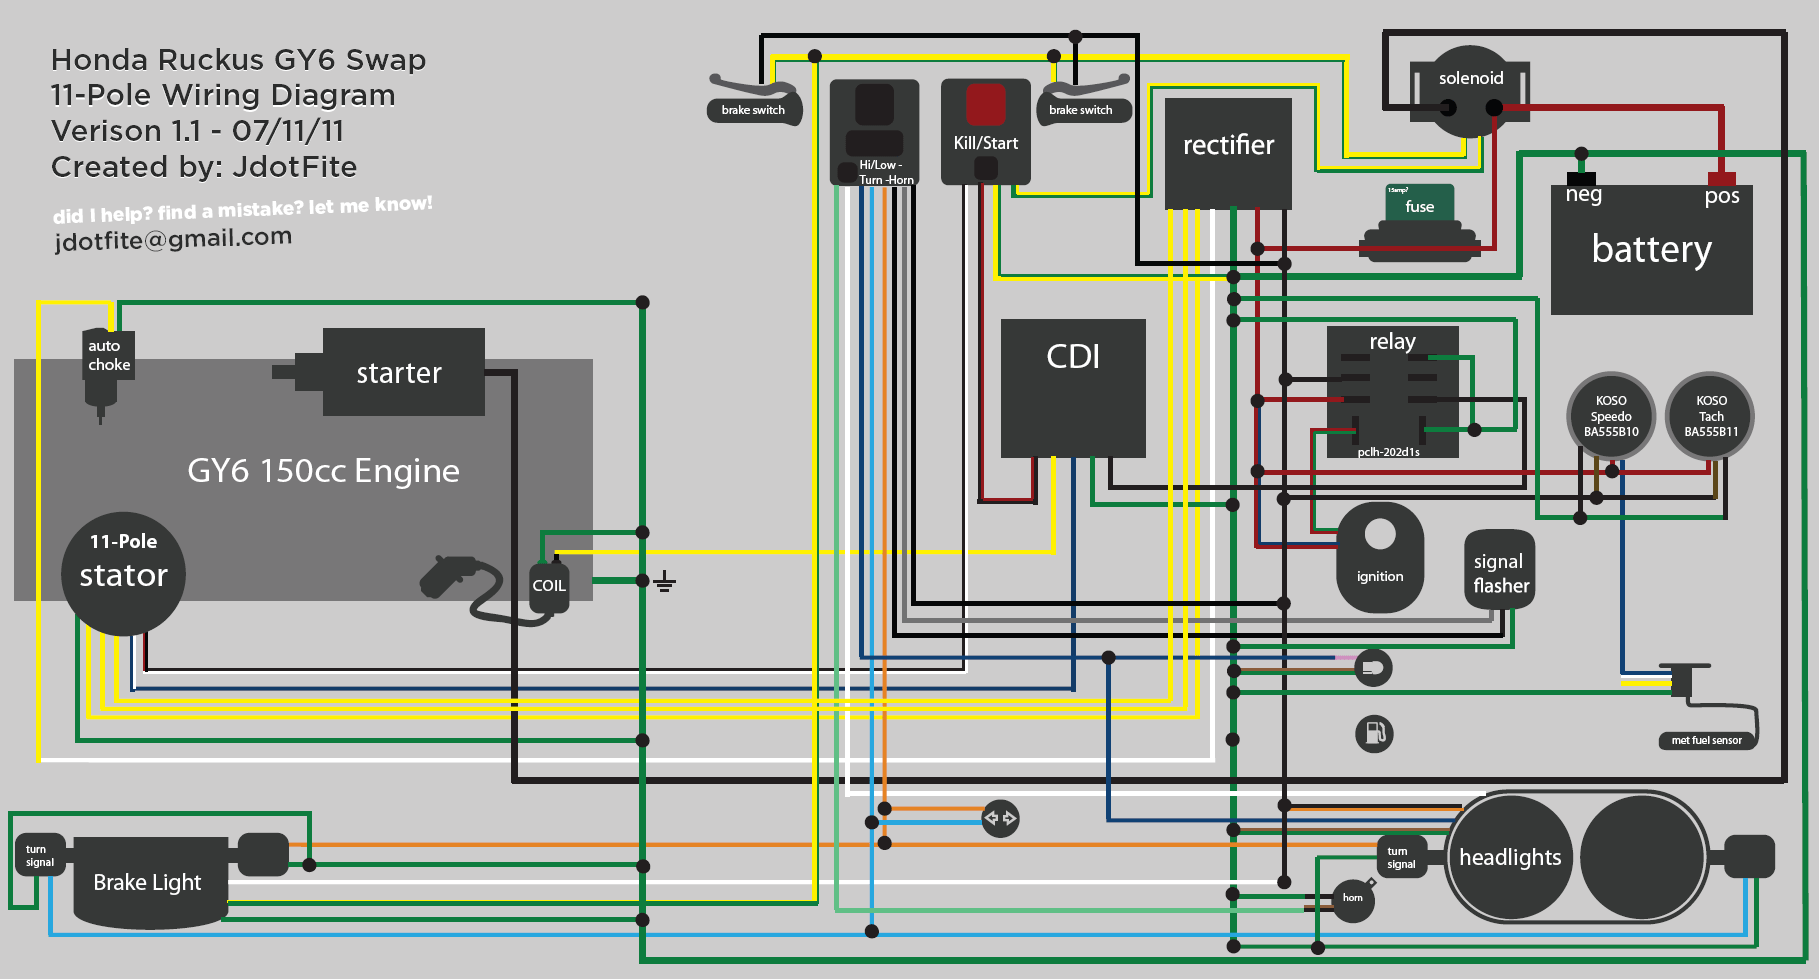 honda 150 wiring diagram wiring diagrams honda supremo 150 wiring diagram honda 150 wiring diagram [ 1819 x 979 Pixel ]